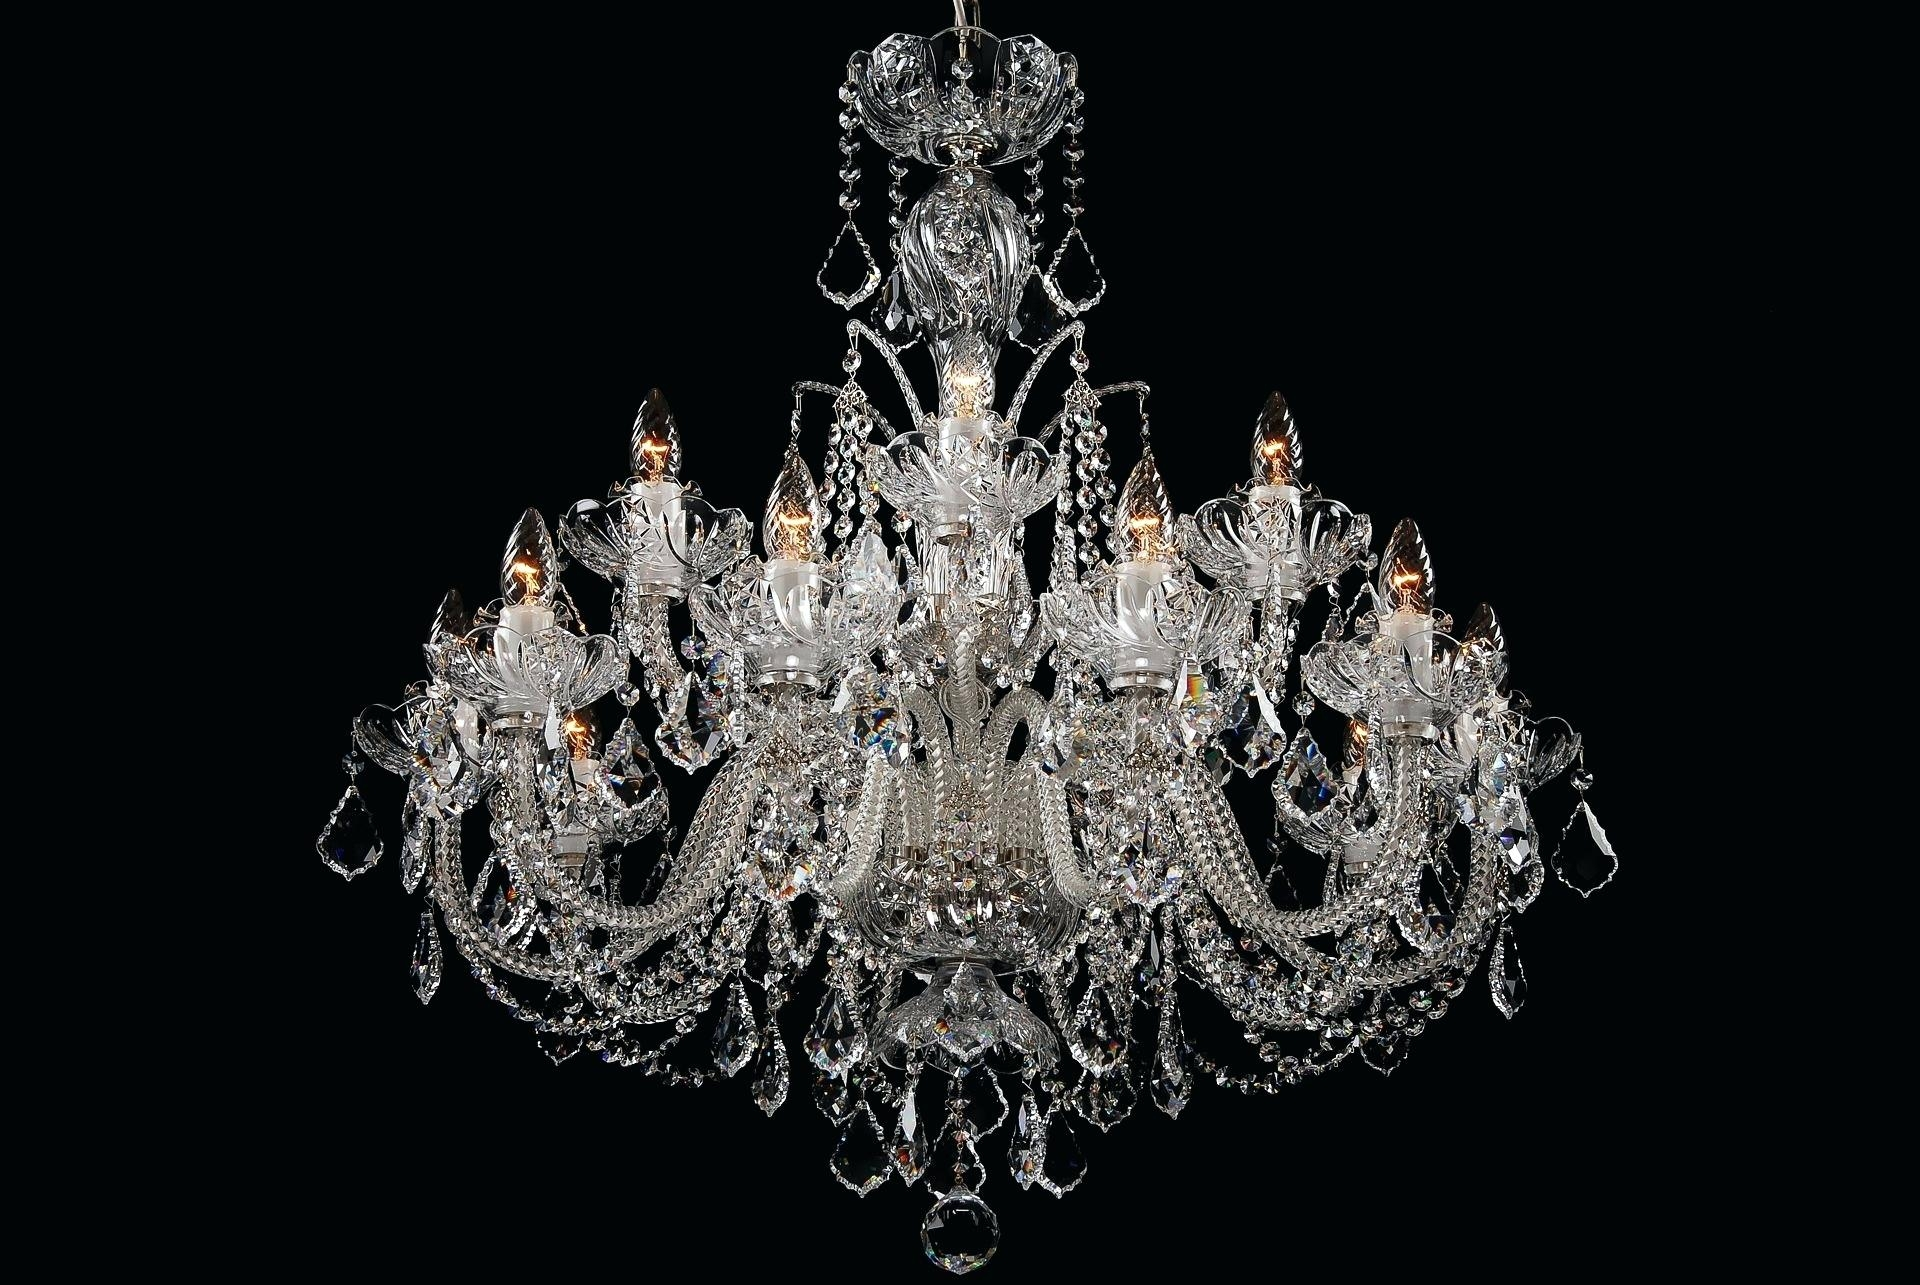 11 ideas of expensive crystal chandeliers. Black Bedroom Furniture Sets. Home Design Ideas